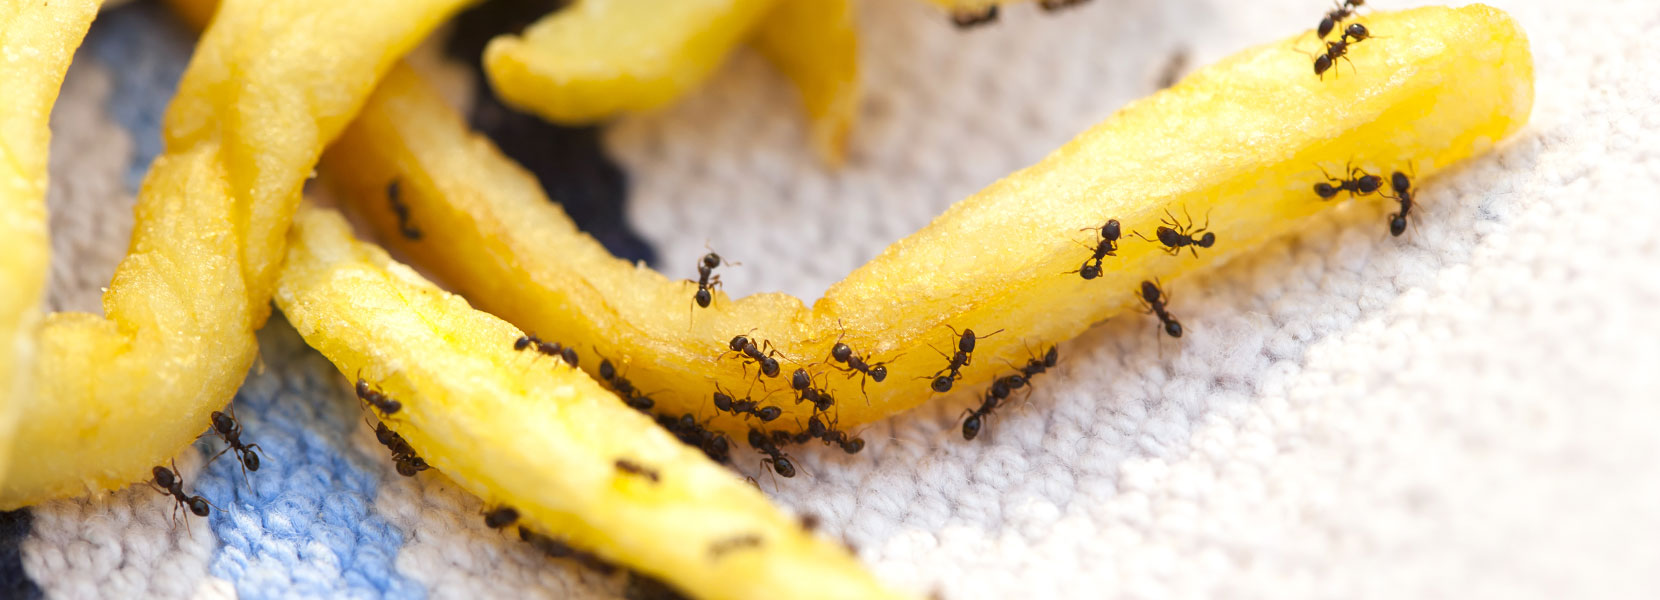 Small ants on french fries